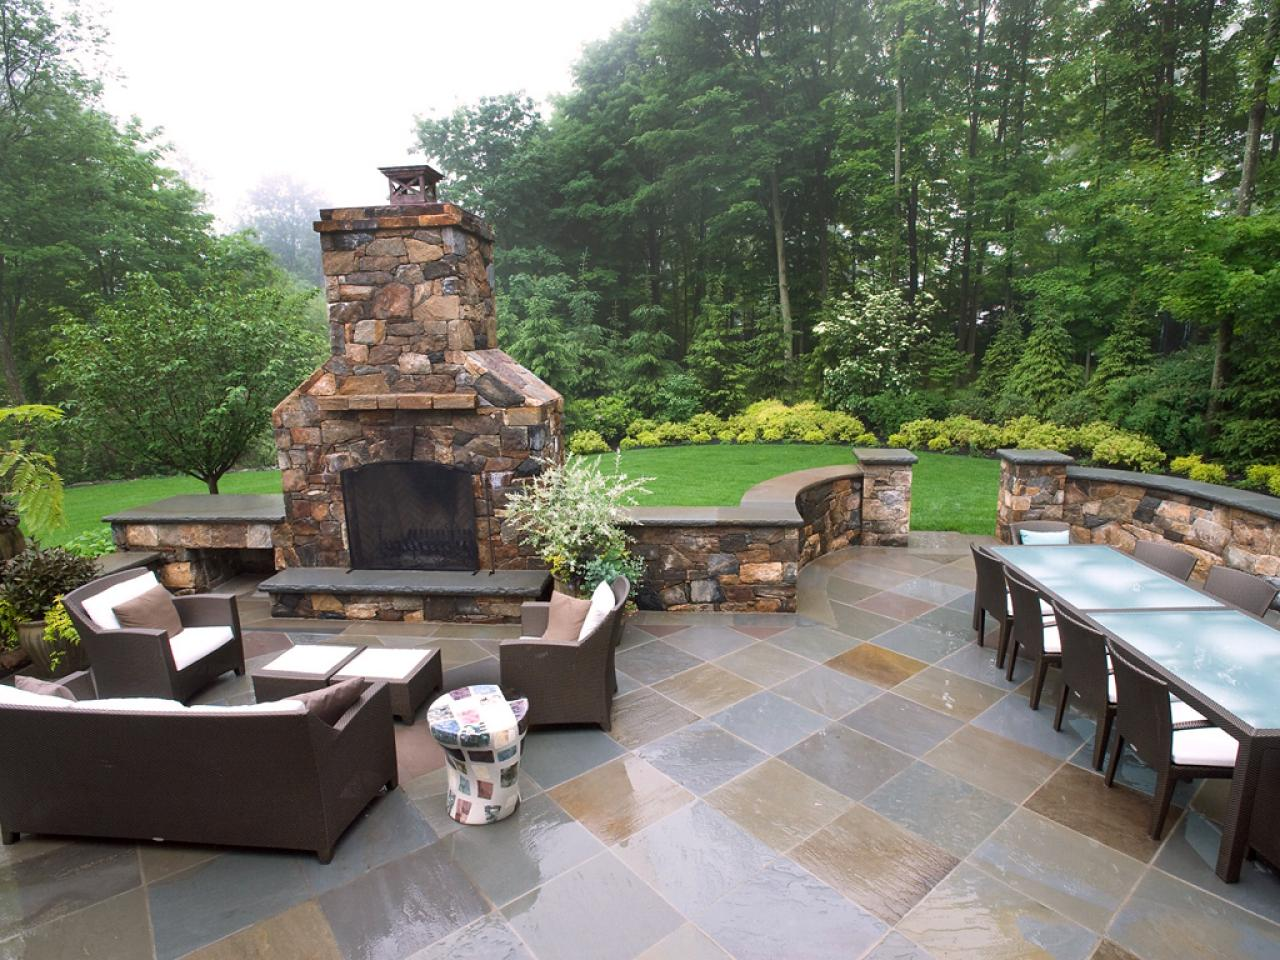 Patio Design & Installation-San Marcos TX Professional Landscapers & Outdoor Living Designs-We offer Landscape Design, Outdoor Patios & Pergolas, Outdoor Living Spaces, Stonescapes, Residential & Commercial Landscaping, Irrigation Installation & Repairs, Drainage Systems, Landscape Lighting, Outdoor Living Spaces, Tree Service, Lawn Service, and more.